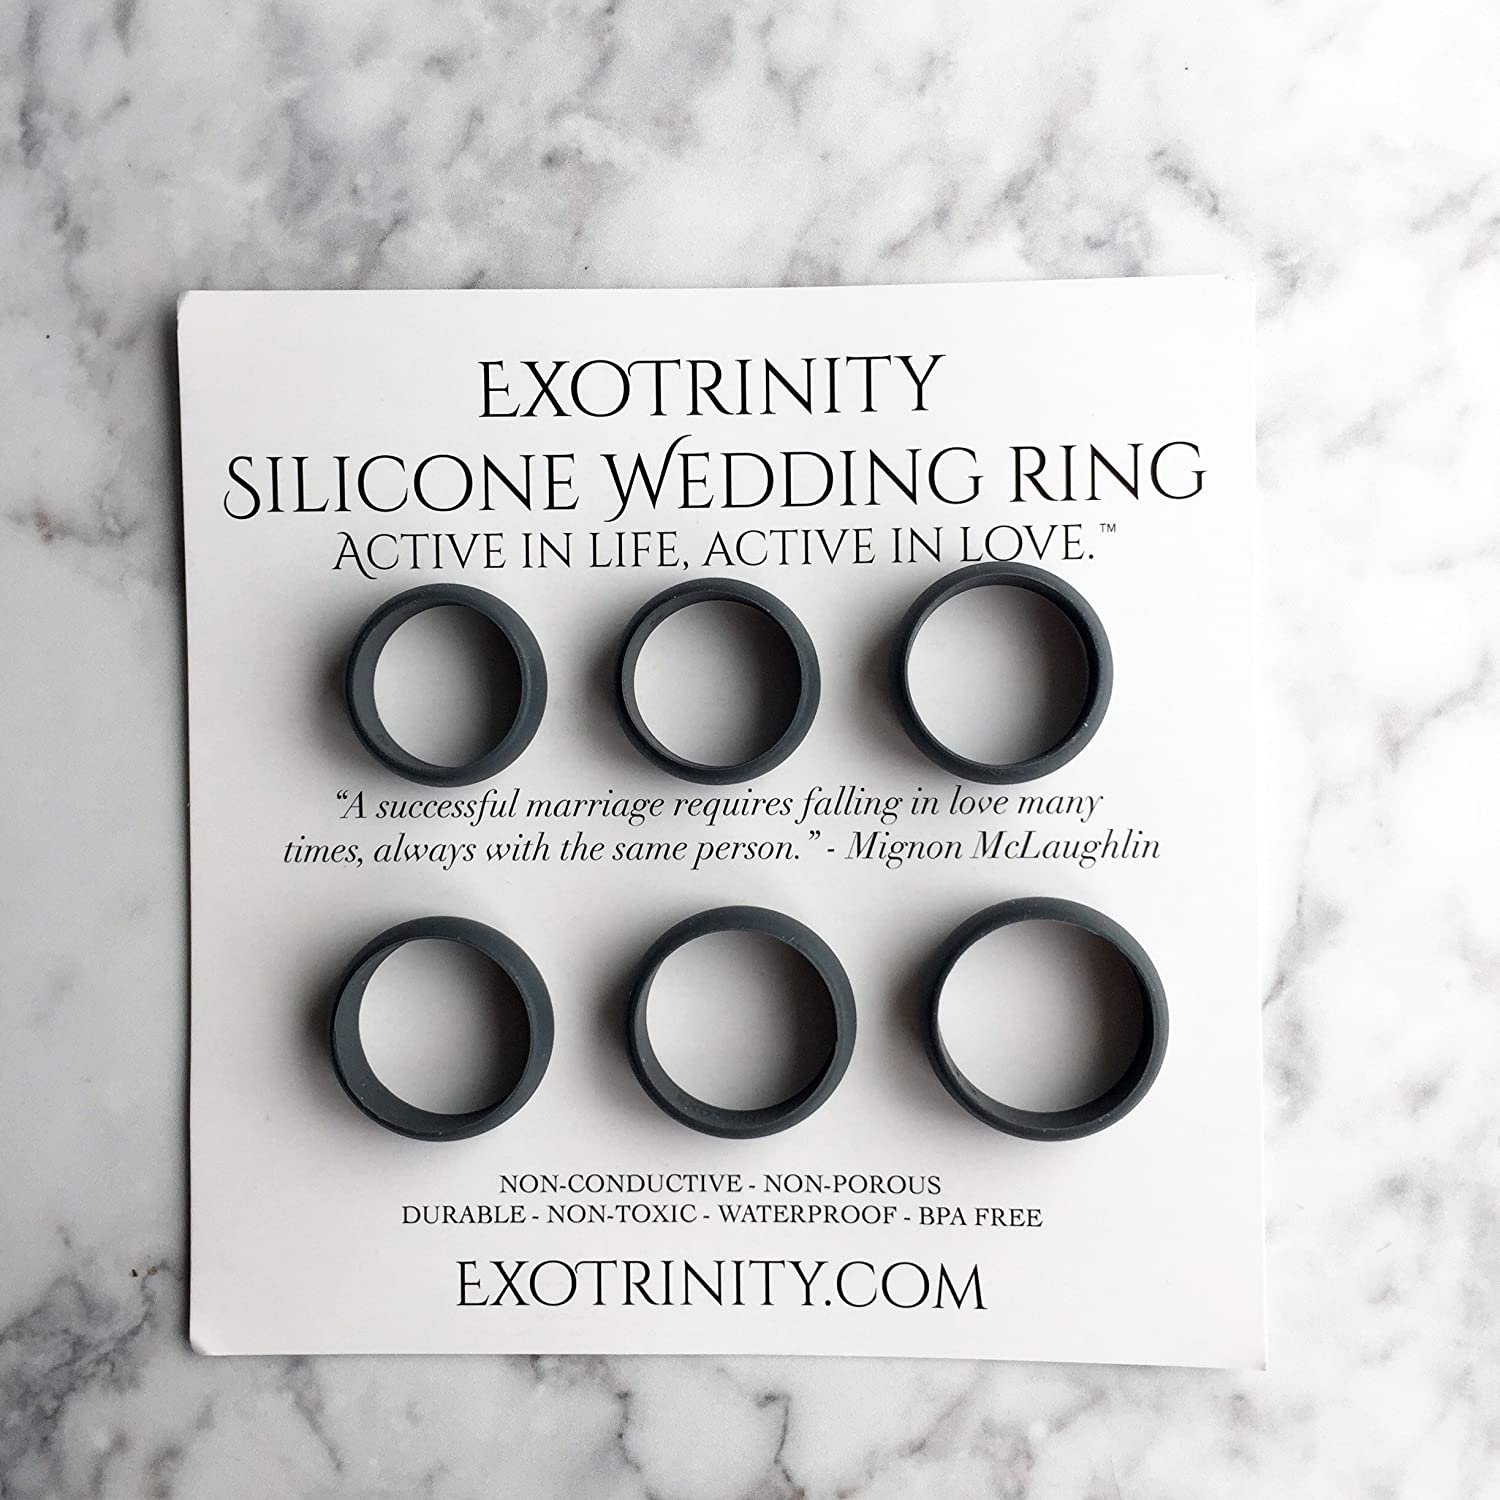 Amazon 6 Men s Silicone Wedding Ring Bands All Sizes In e